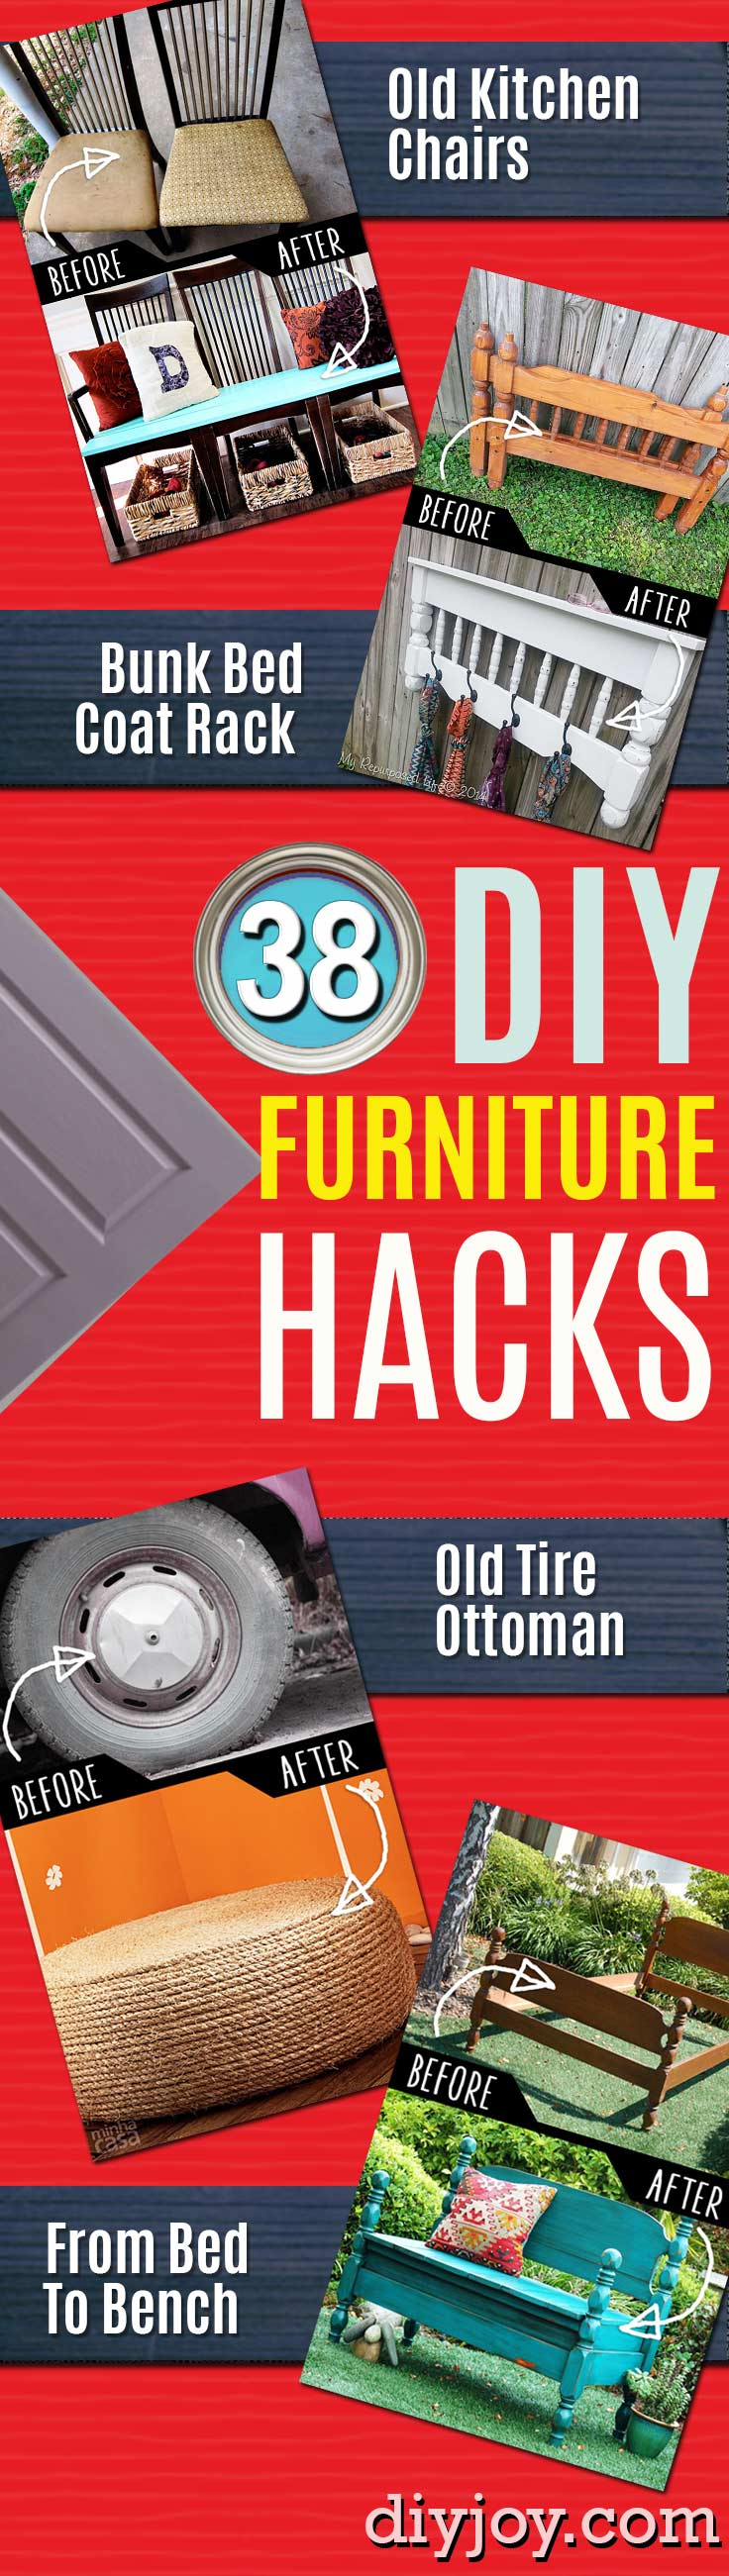 39 clever diy furniture hacks Cool household hacks